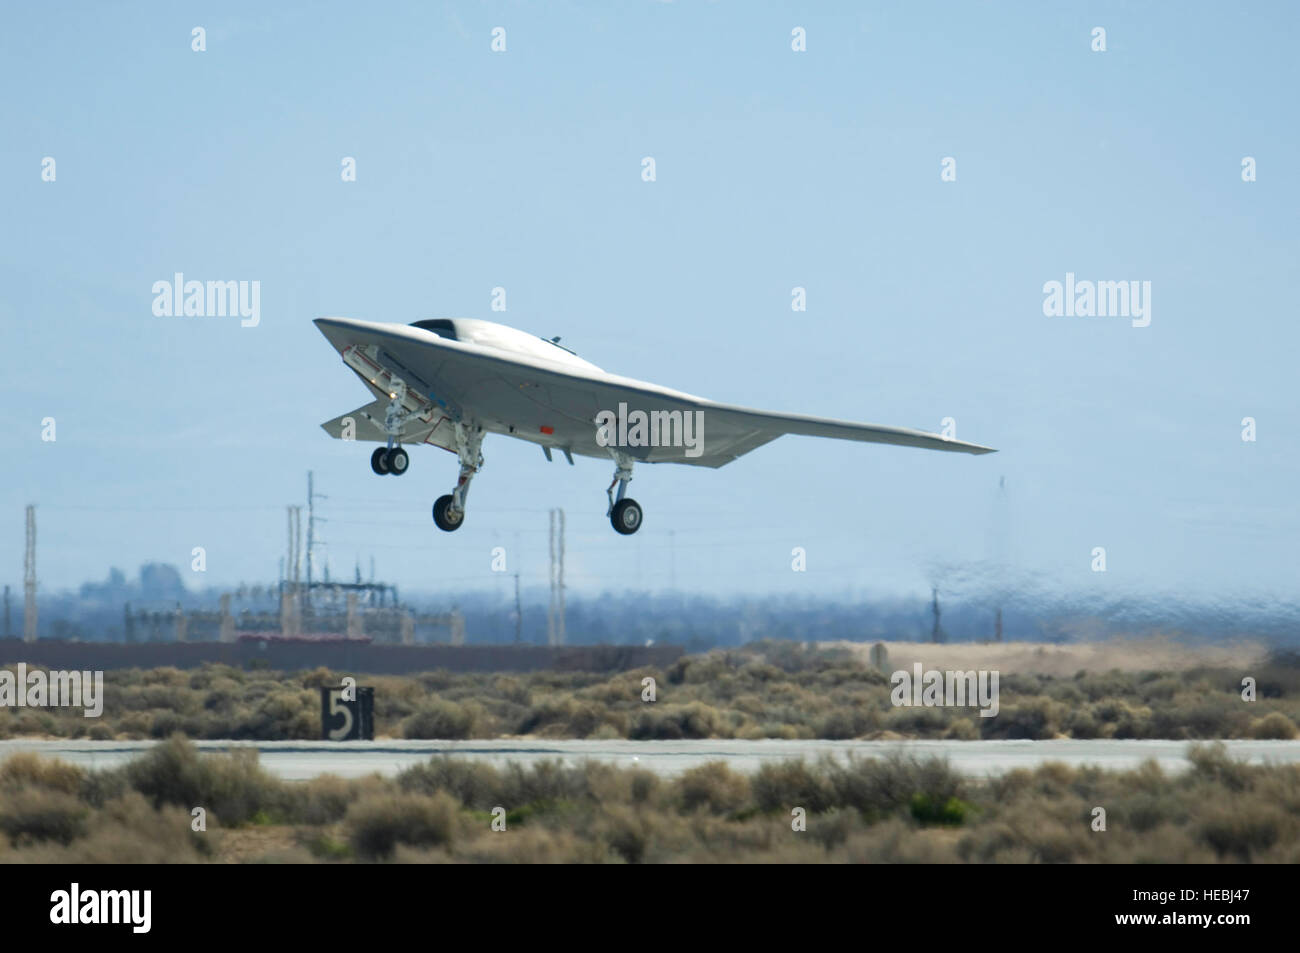 A Navy X-47B Unmanned Combat Air System Demonstration aircraft takes off and flies for the first time Feb. 4, 2011, Stock Photo